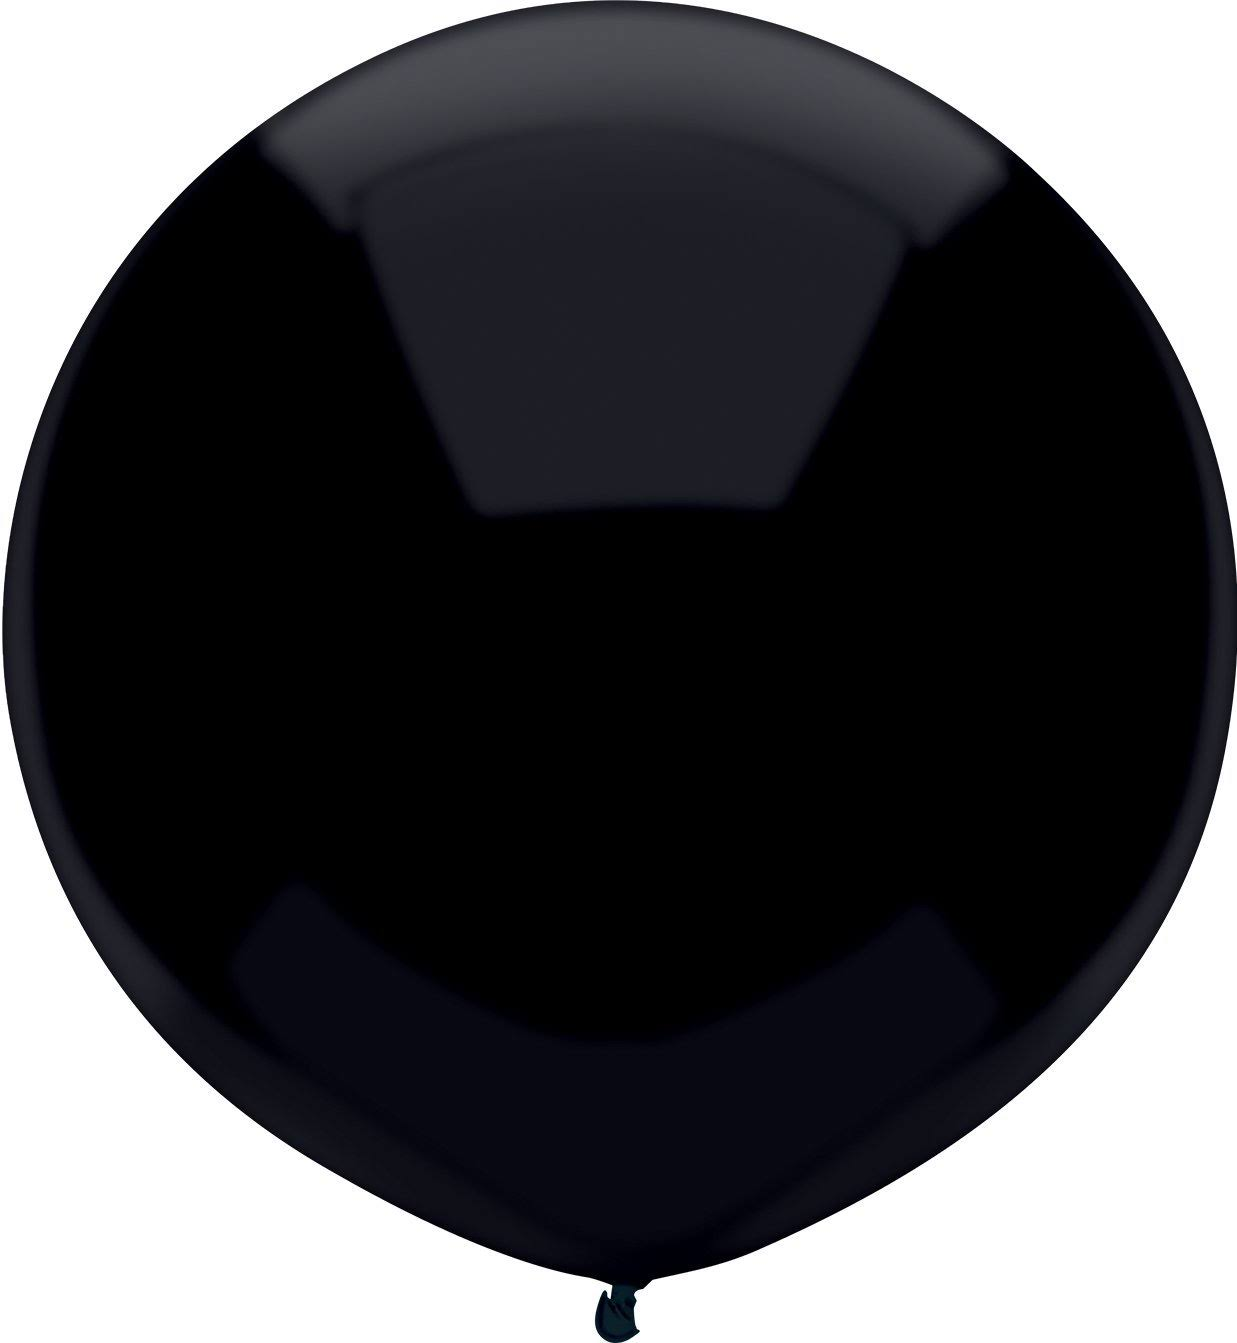 PartyMate 67194 Solid Color Round Latex Balloons 17-inch Pitch Black